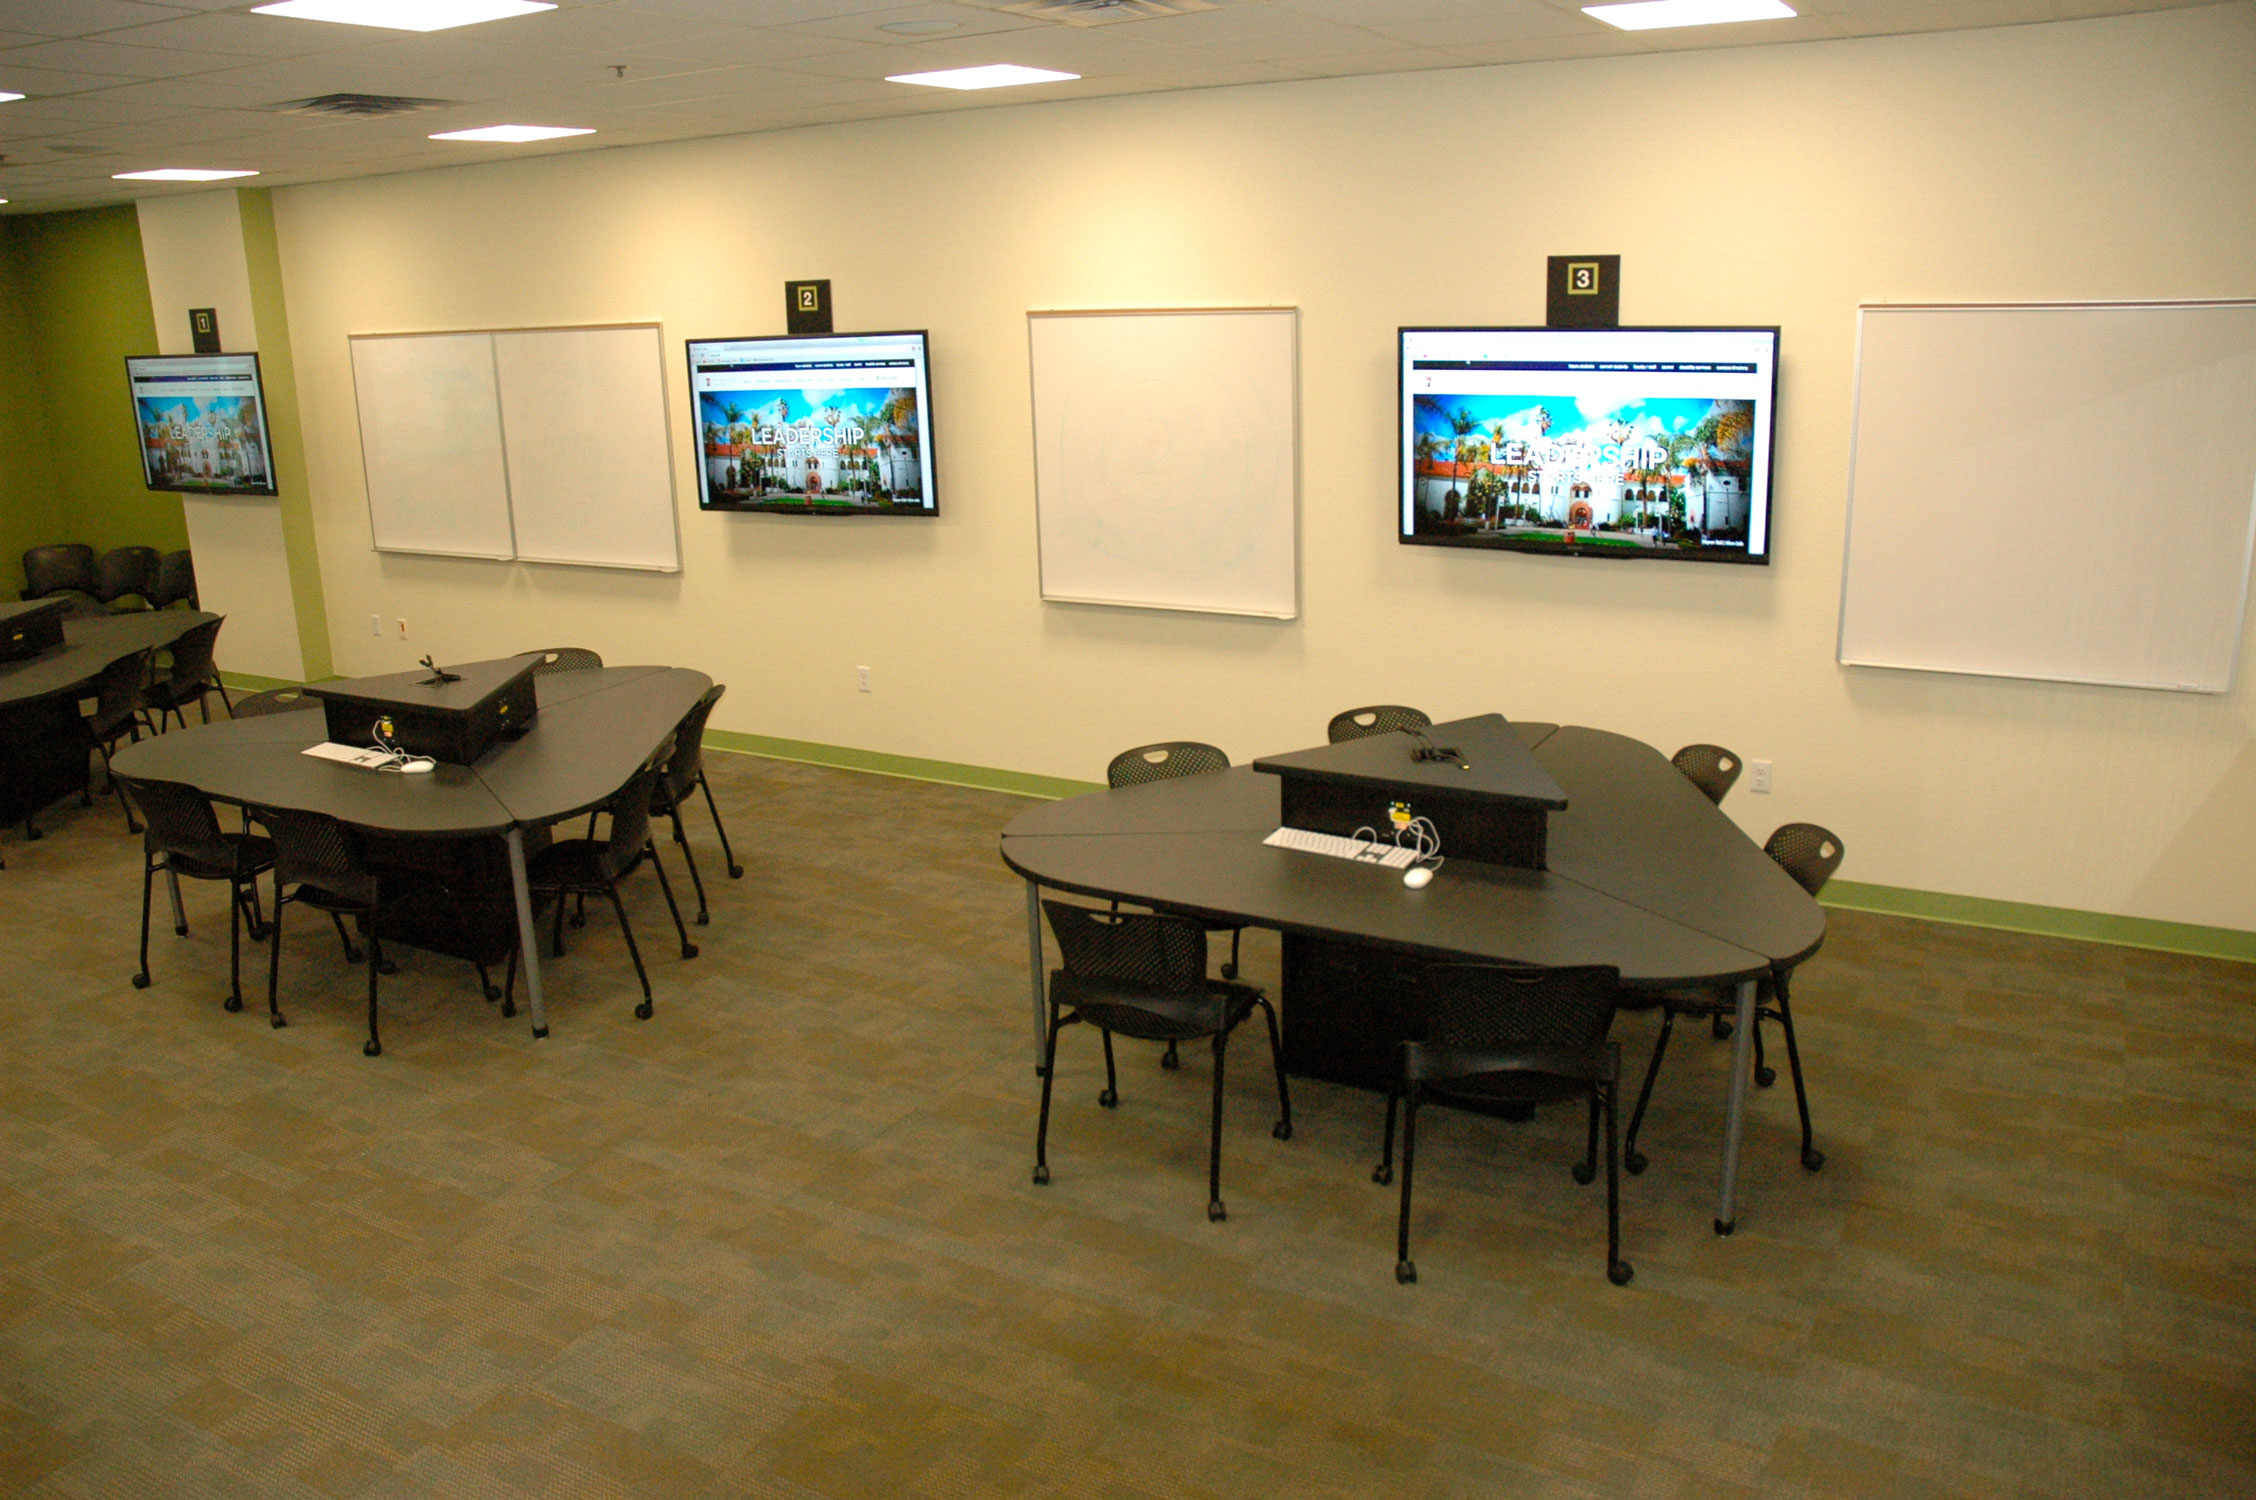 Learning Research Studio - AH 1112 at San Diego State University